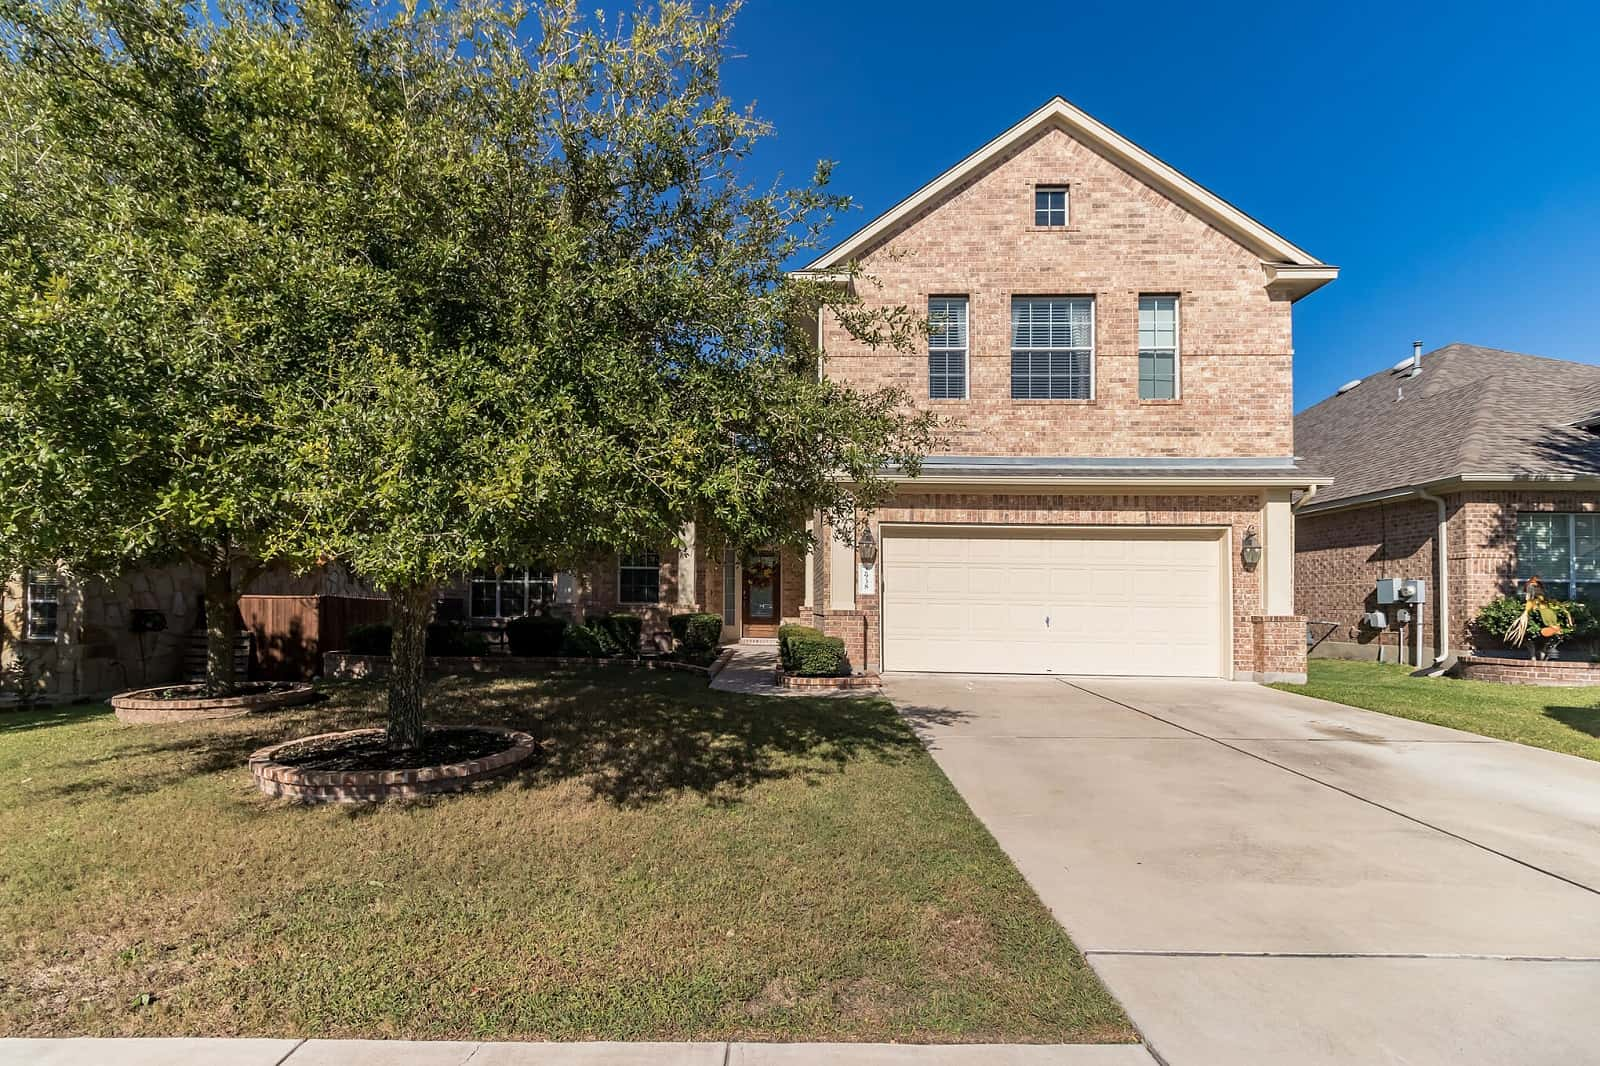 Real Estate Photography in Round Rock - TX - Front View